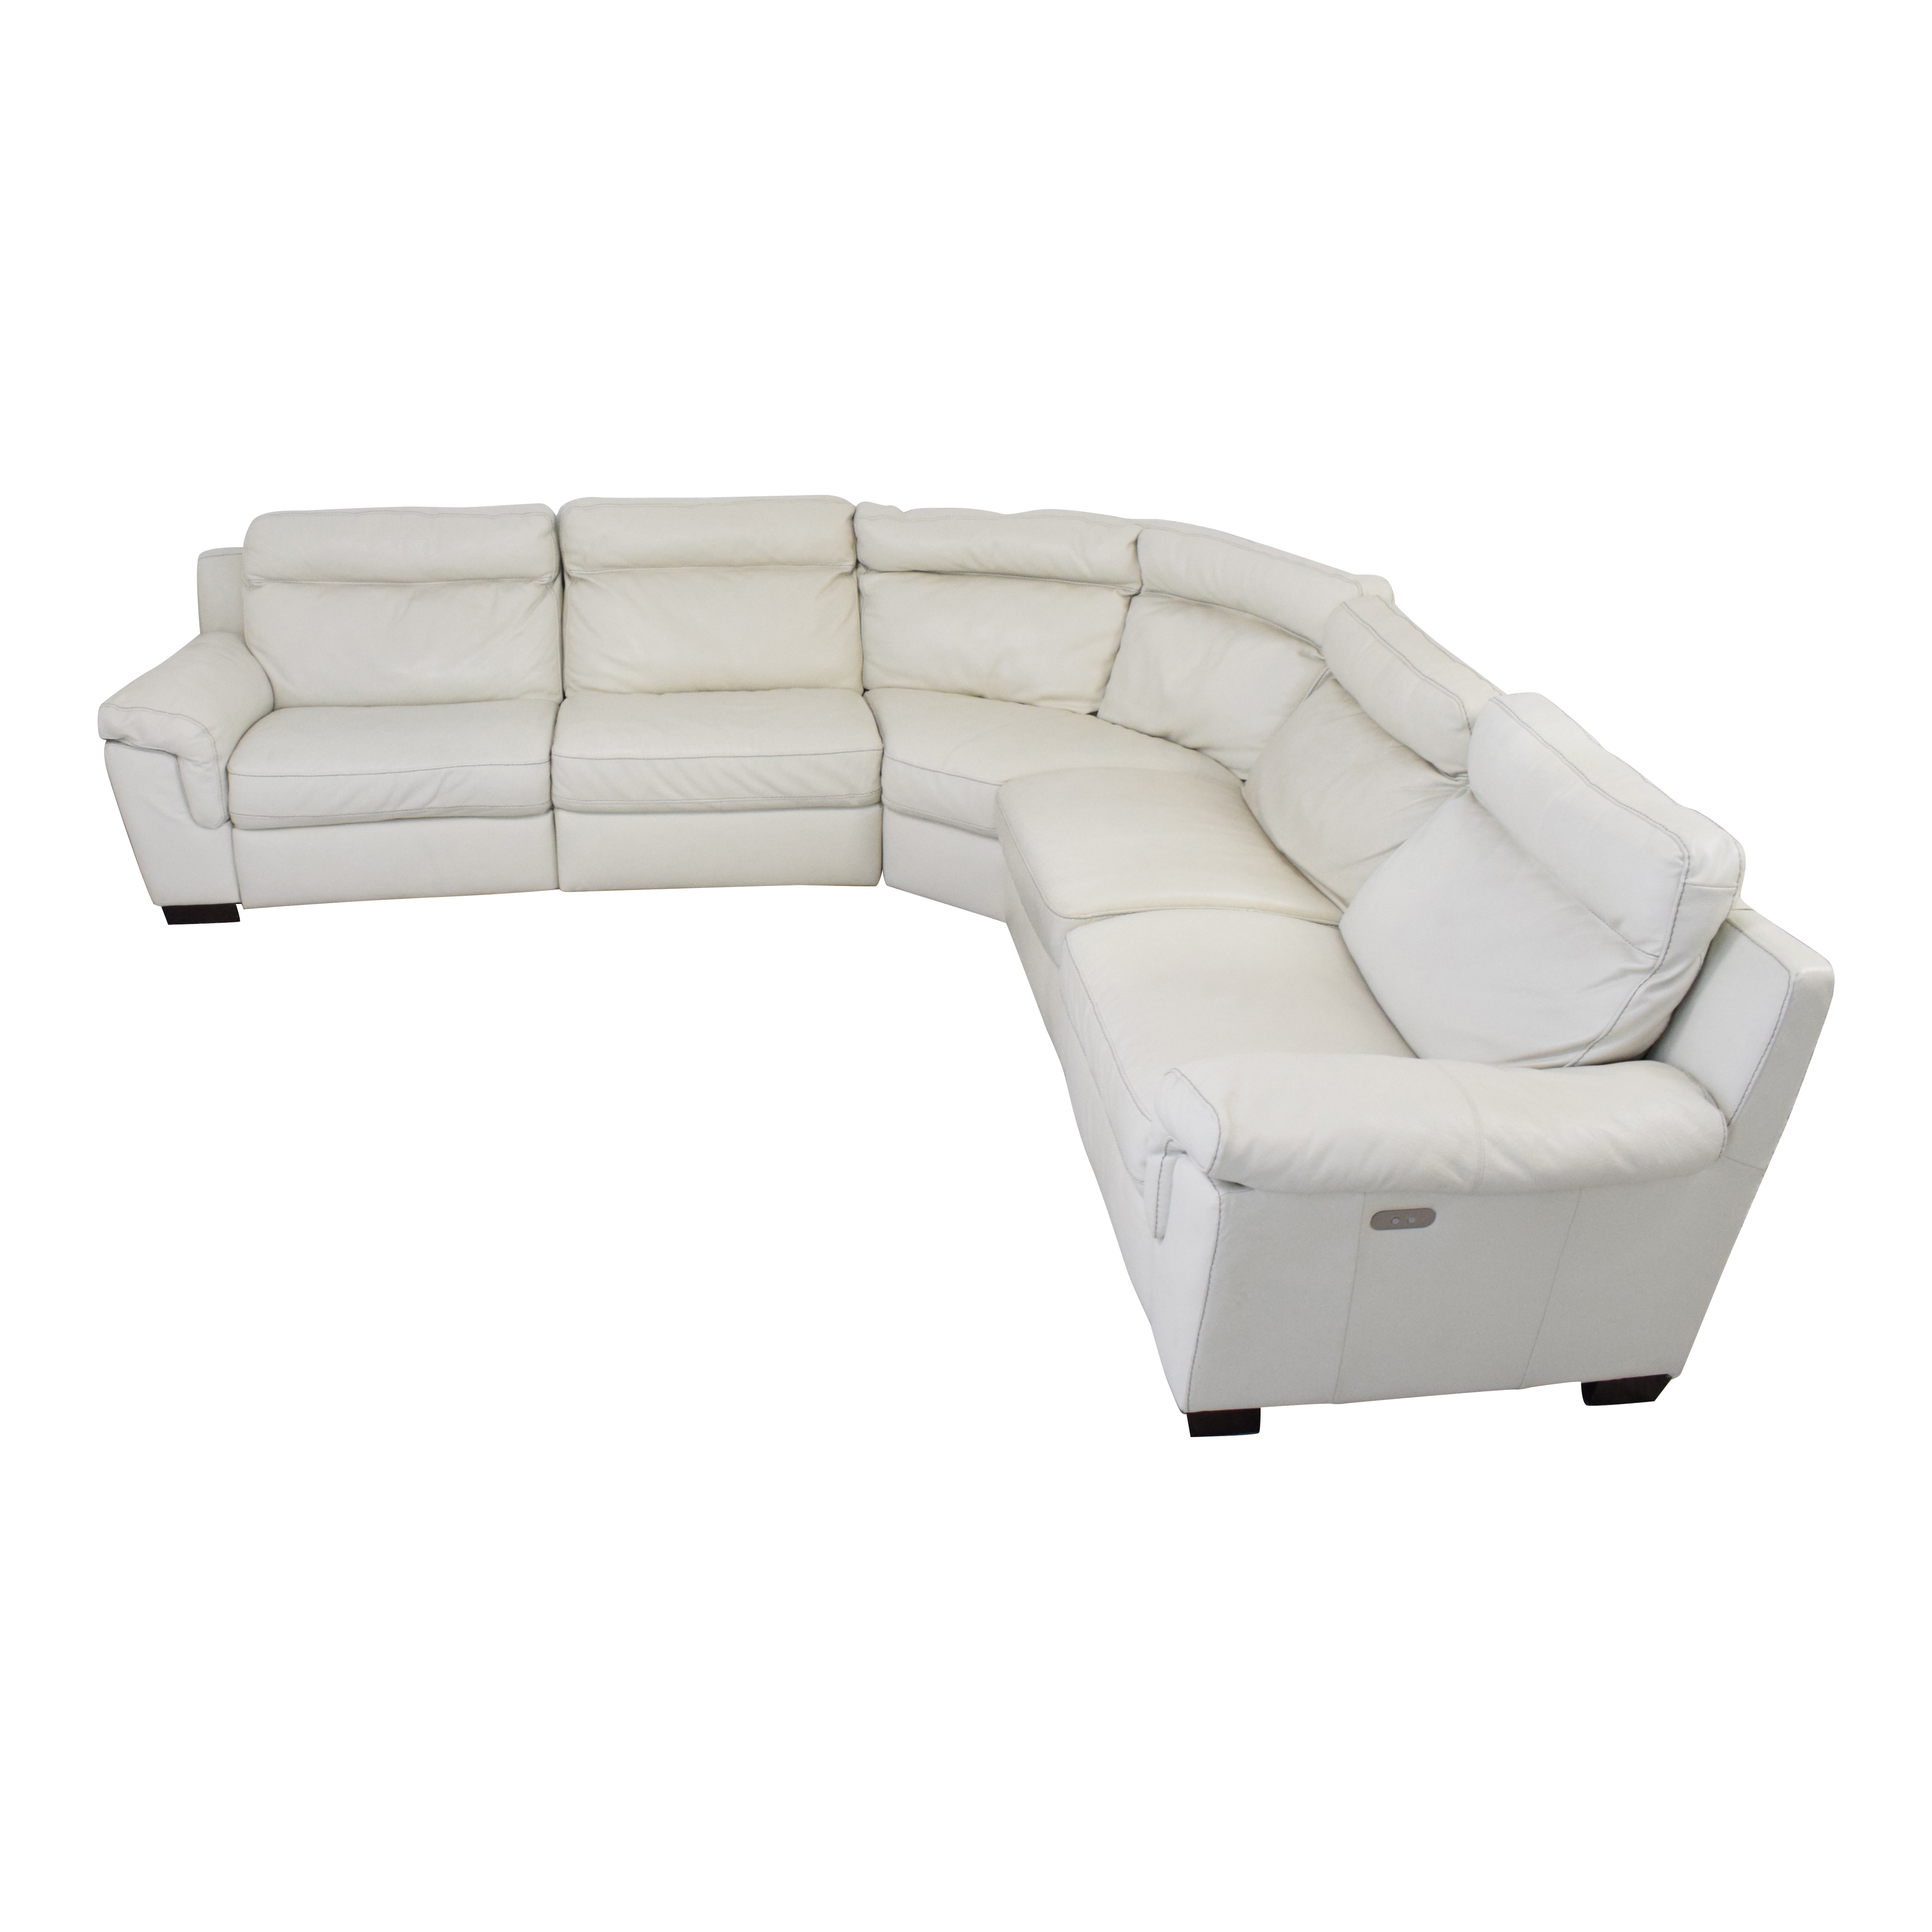 Macy's Leather Sectional Sofa with Reclining Seats / Sectionals